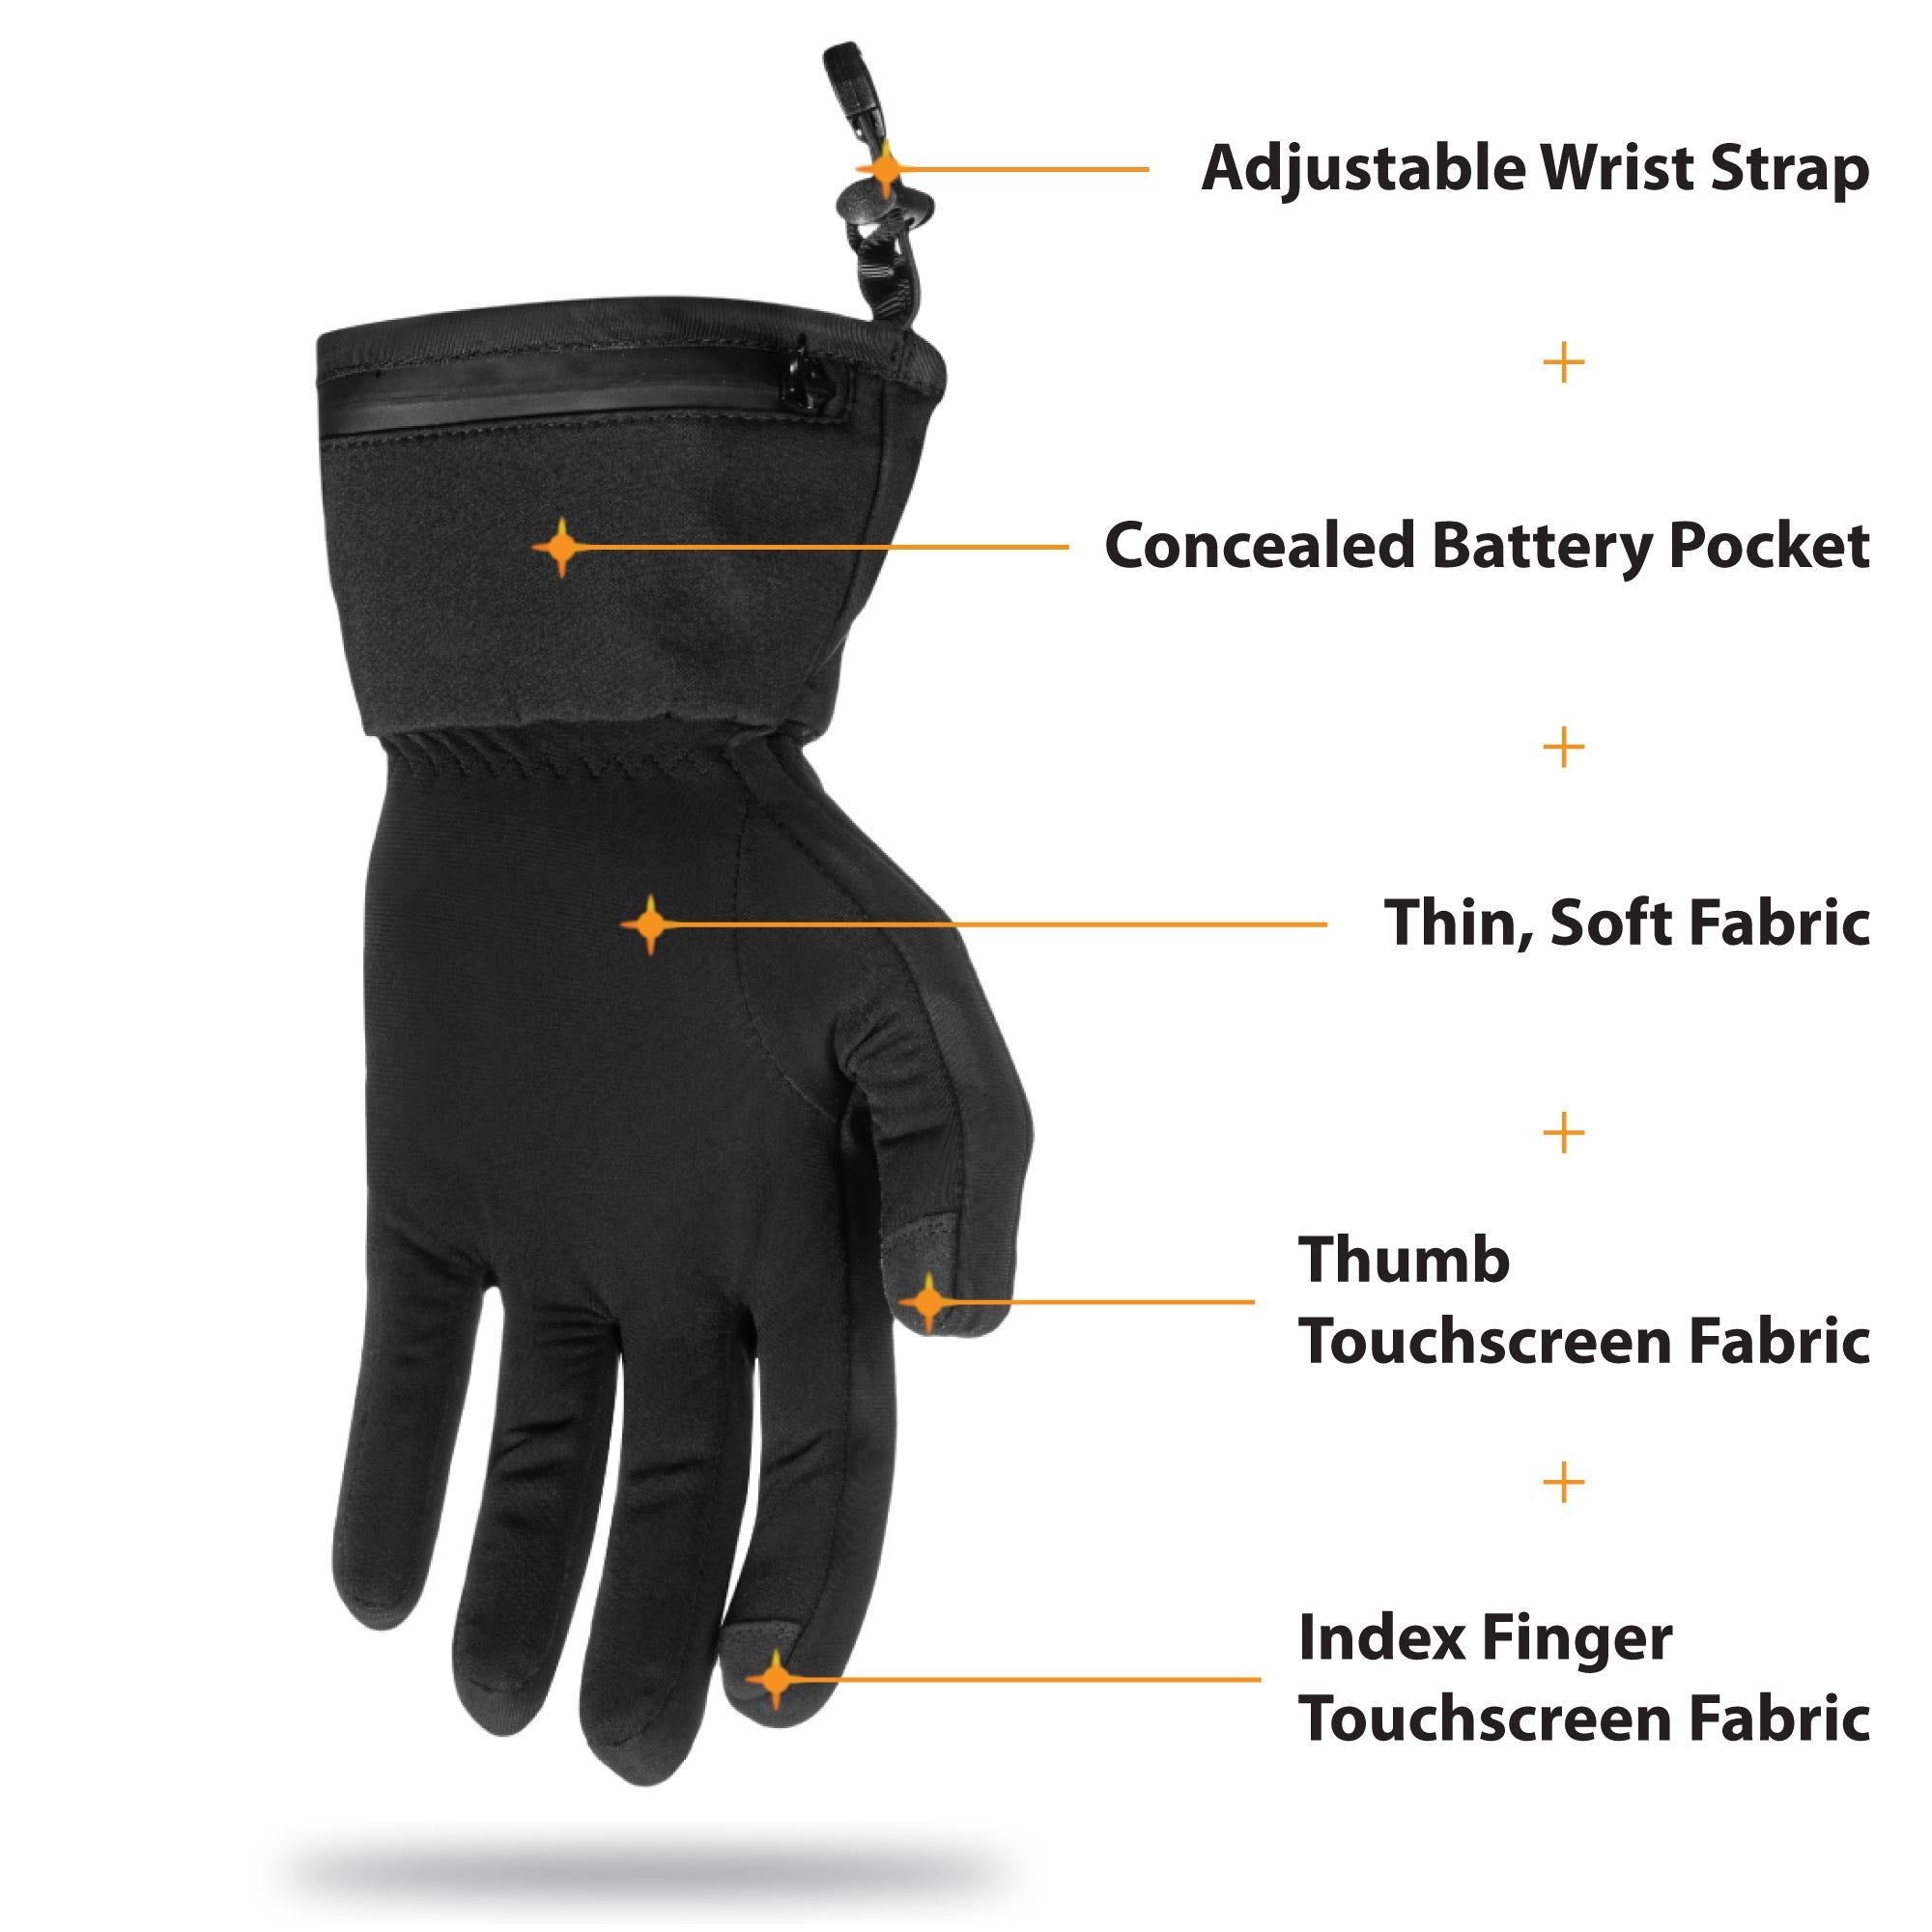 our battery powered heated gloves utilize a thin flexible battery that fits in a hidden pocket to maximize comfort.  thin and soft fabrics are comfortable and touchscreen fabrics on the fingertips make it easy to use your devices.